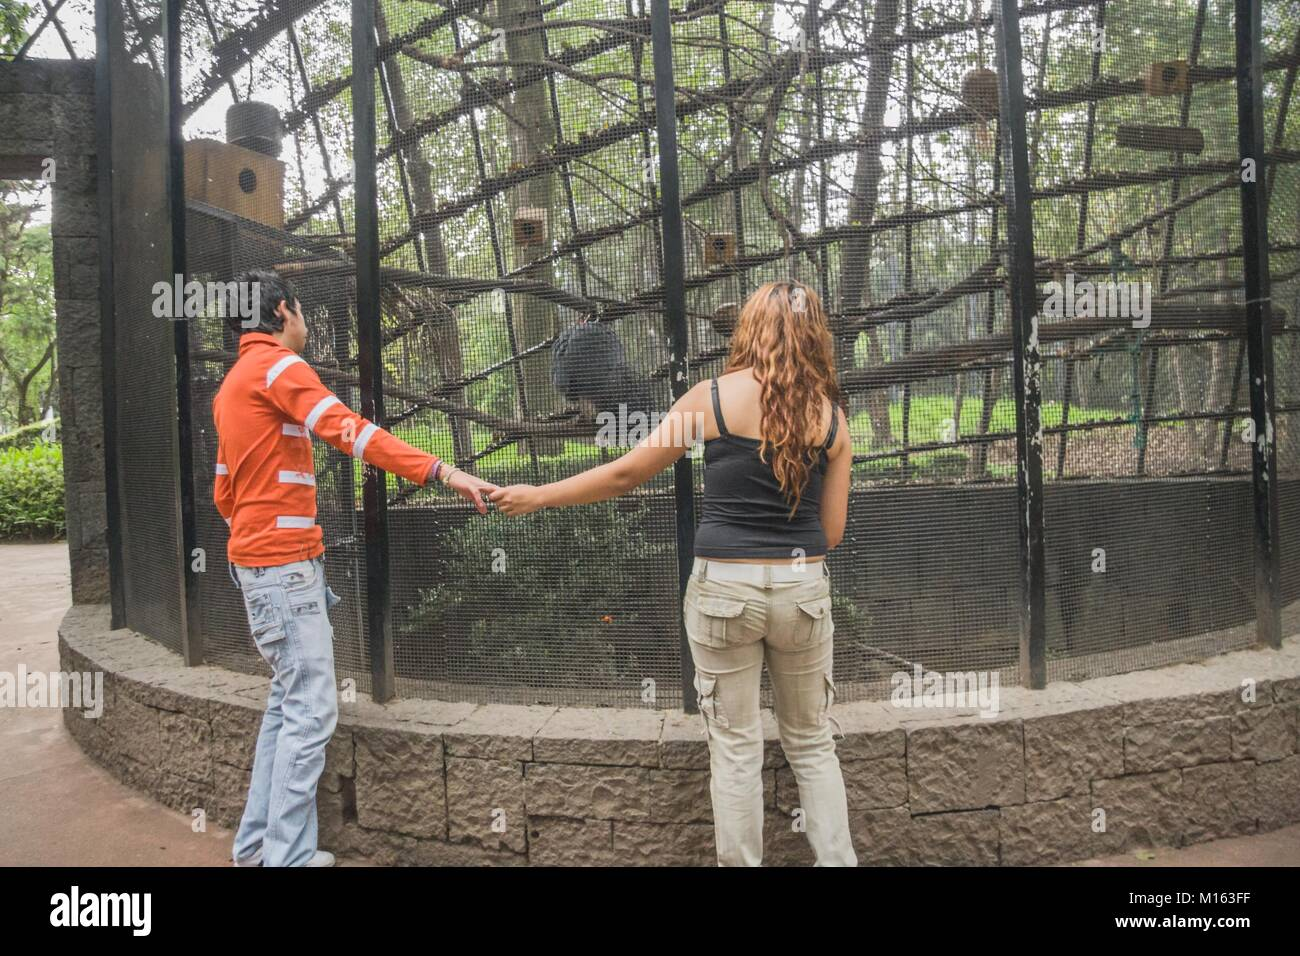 An couple of young lovers hold hands while enjoying a visit to a zoo in Mexico City. - Stock Image